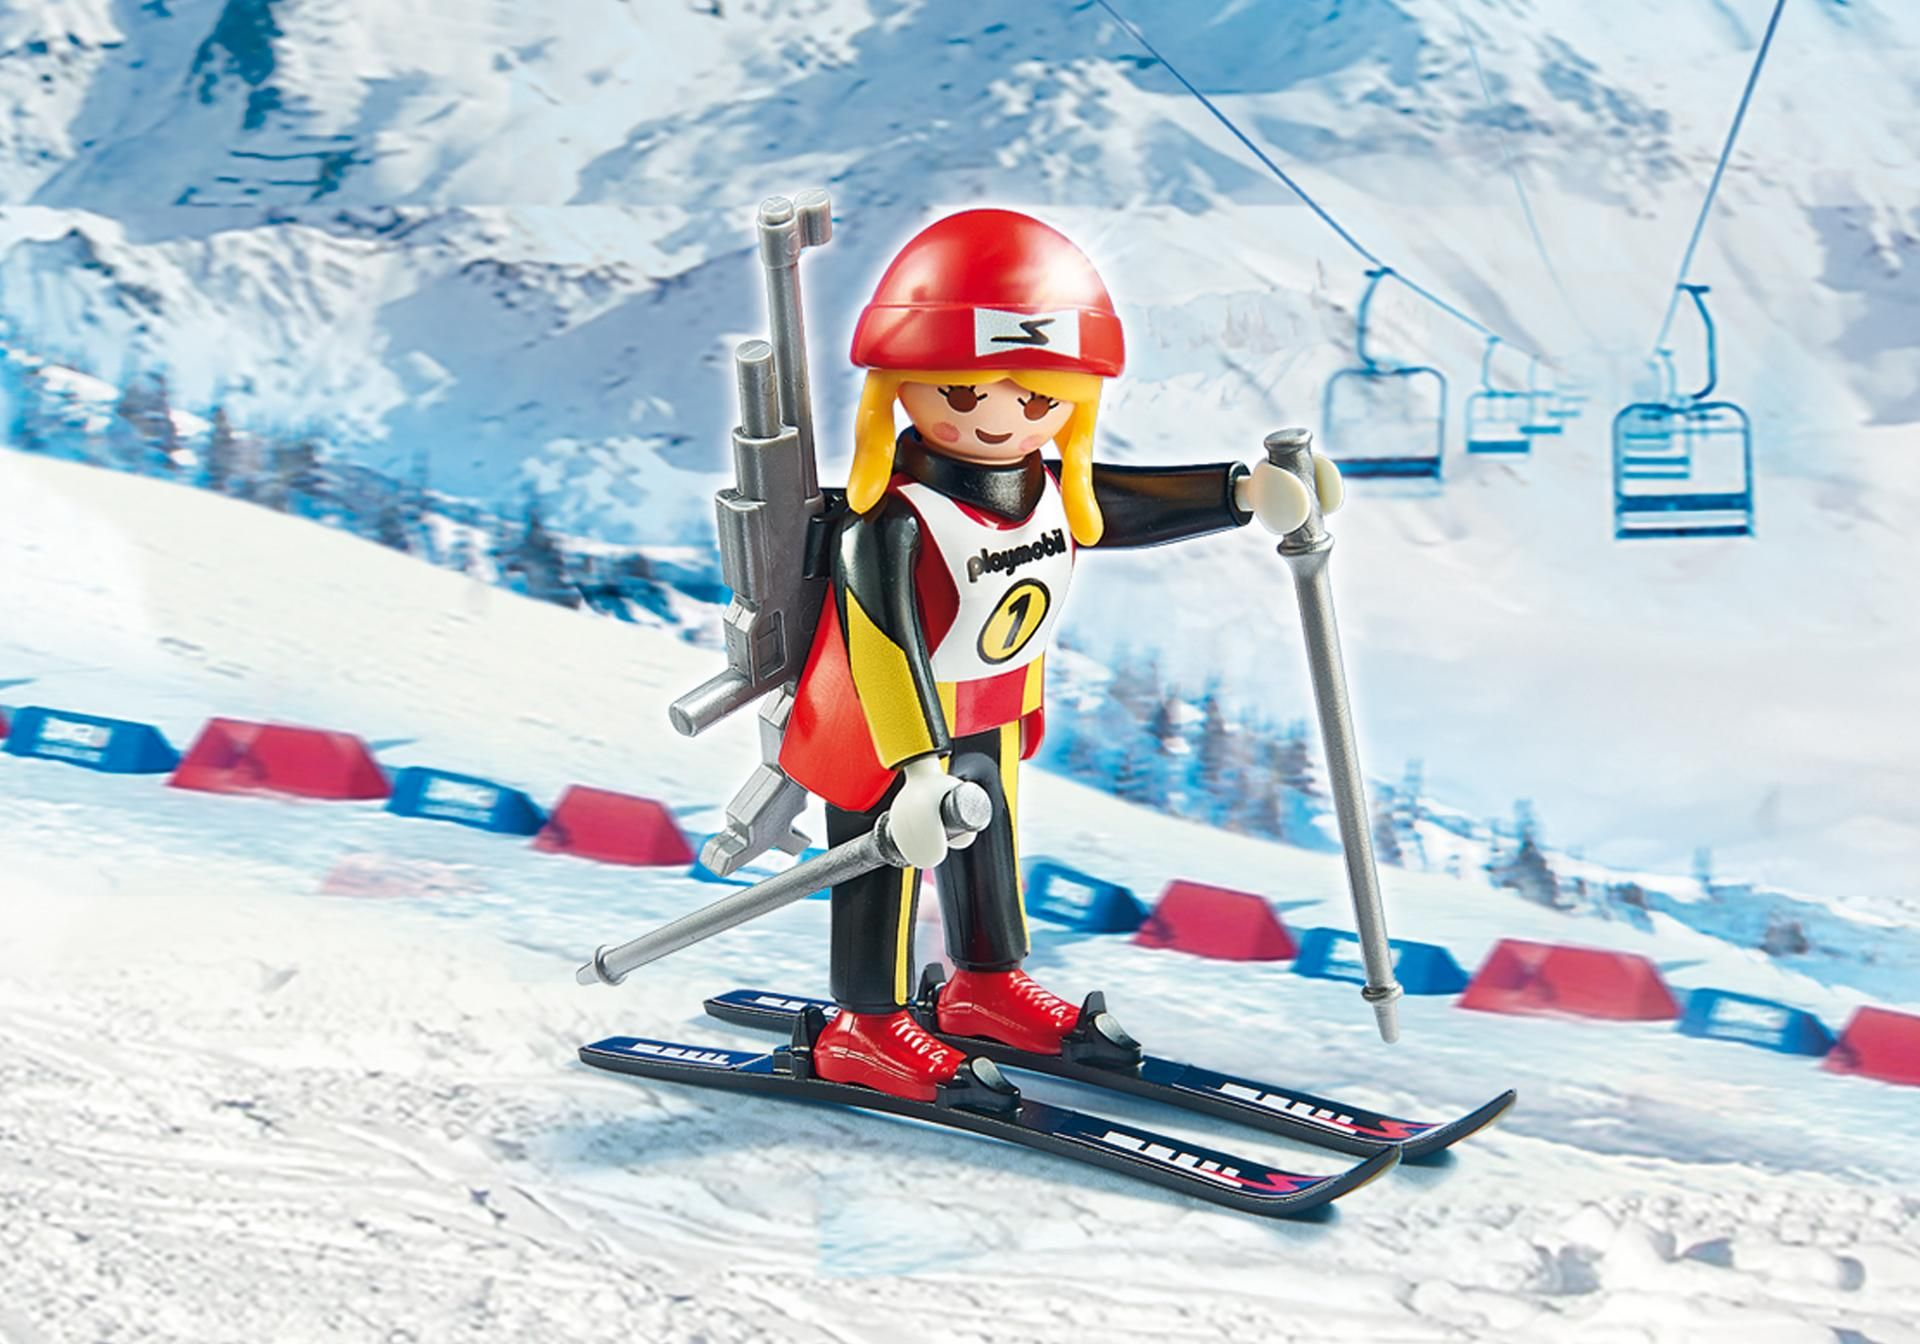 httpmediaplaymobilcomiplaymobil9287_product_detail - Playmobil Ski